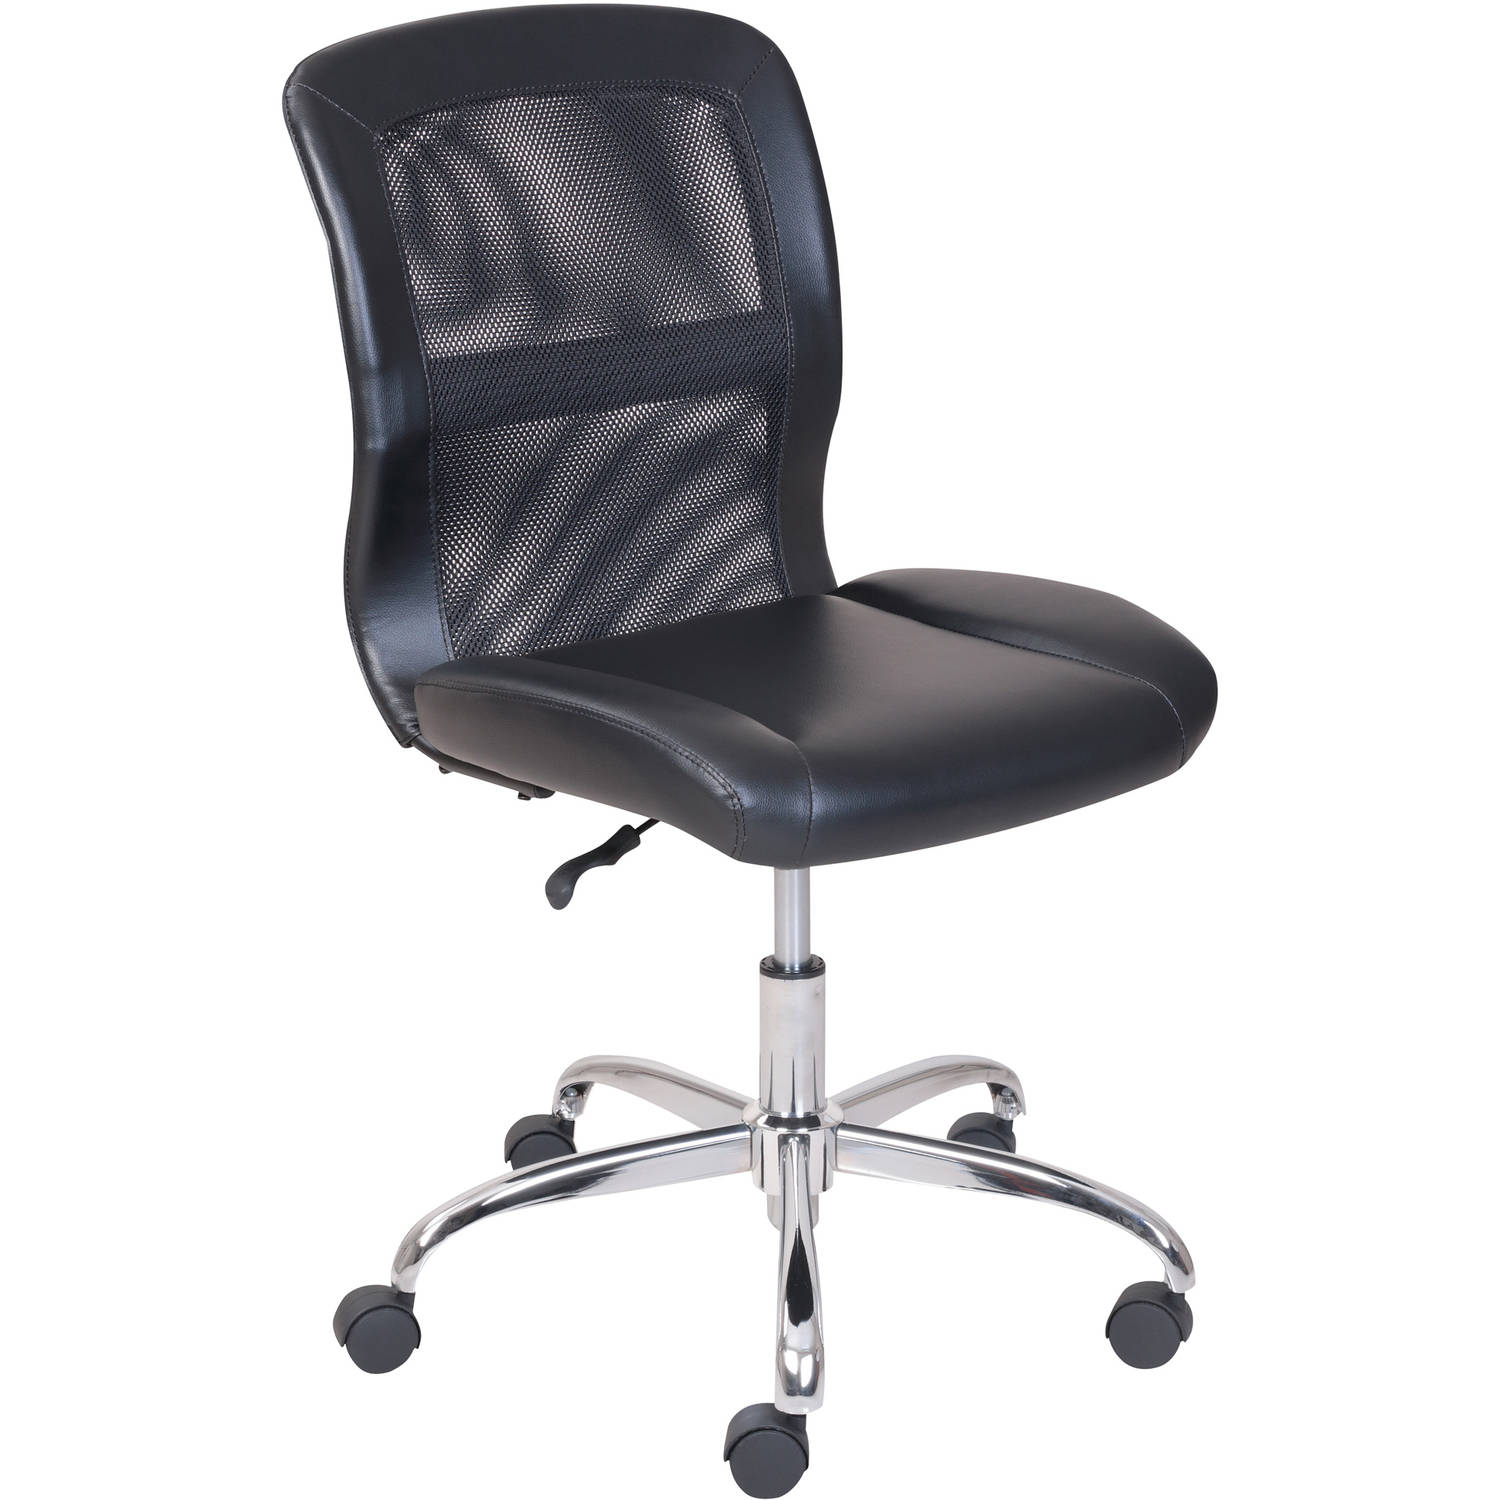 Genial Product Image Mainstays Vinyl And Mesh Task Office Chair, Multiple Colors